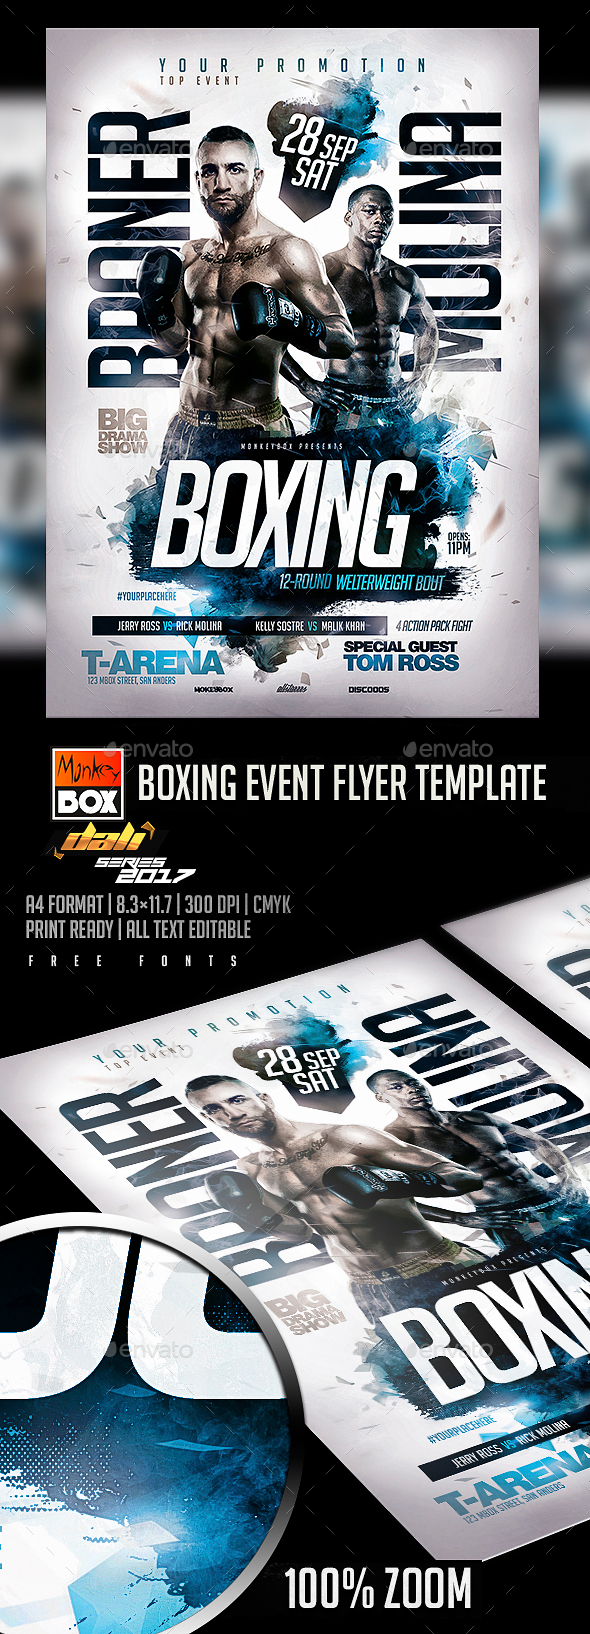 Boxing Event Flyer Template - Flyers Print Templates